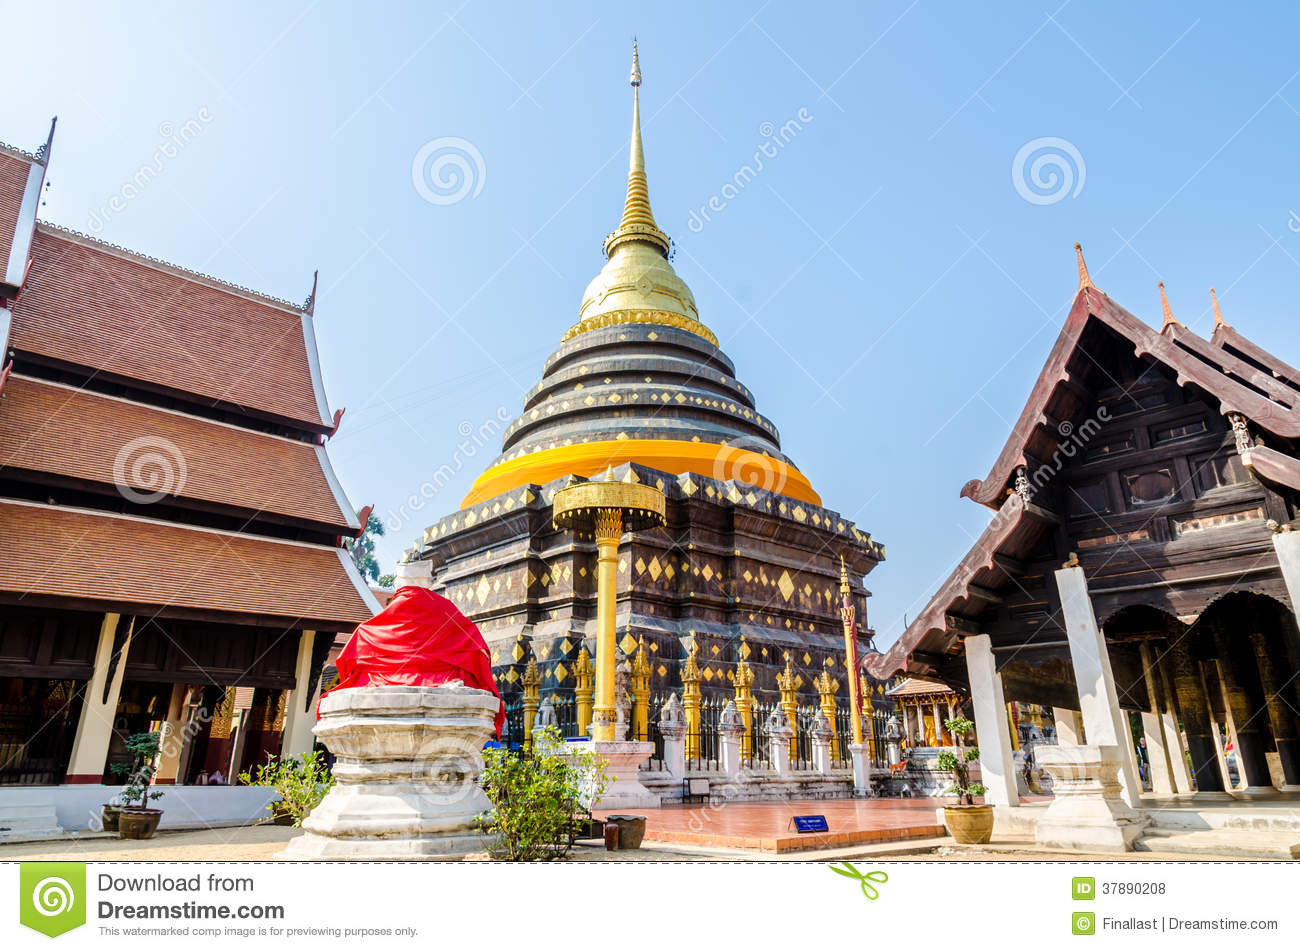 Pagode in Wat Pra That Lampang Luang